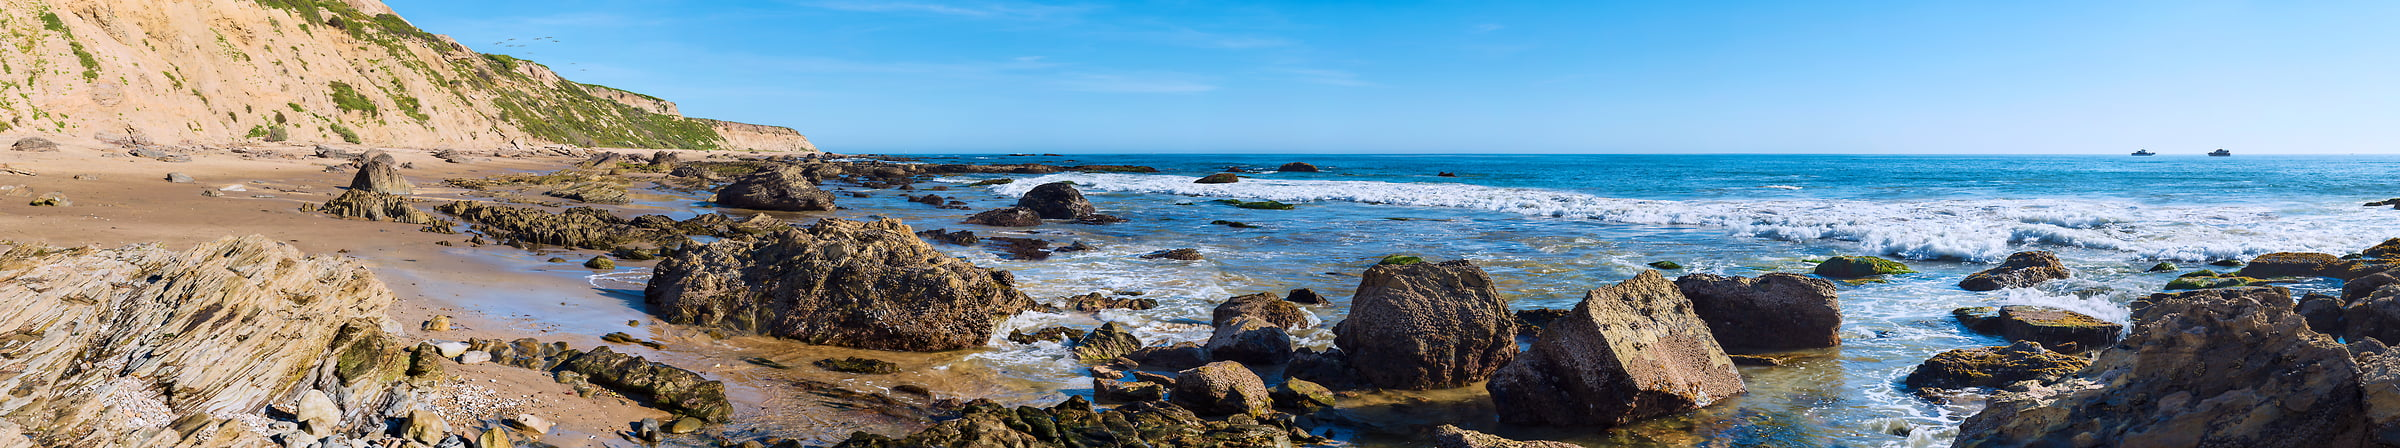 1,405 megapixels! A very high resolution, large-format VAST photo of a seascape with the beach, rocks, sand, and waves; panorama photograph created by Jim Tarpo in Newport Beach, California